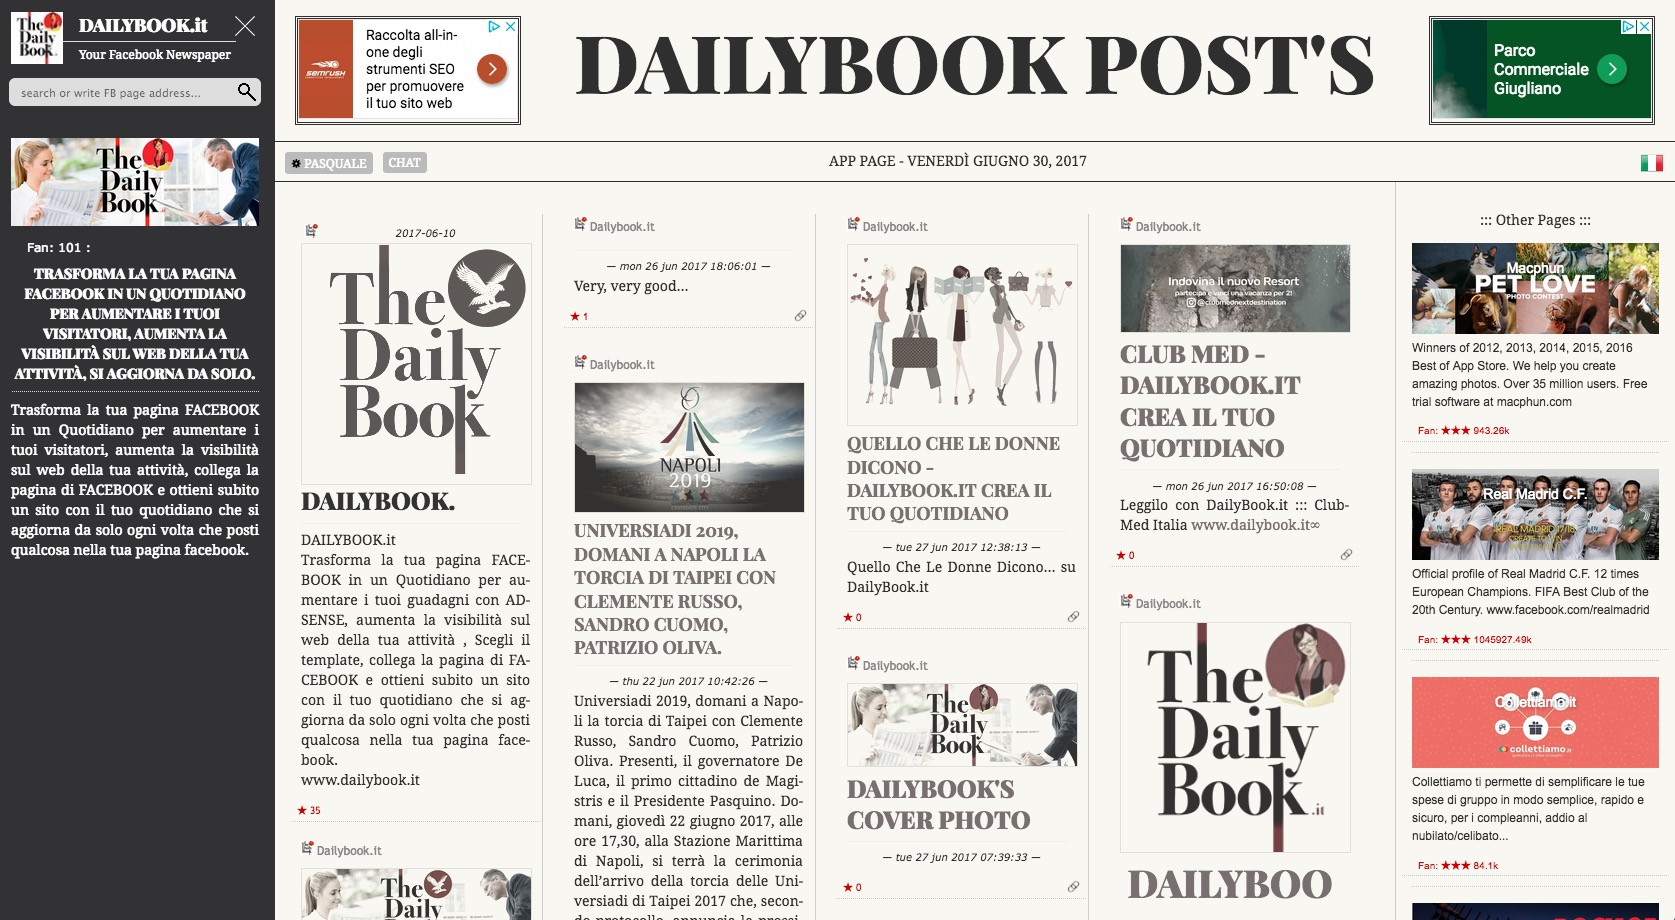 Trasforma Facebook in un Quotidiano con DailyBook